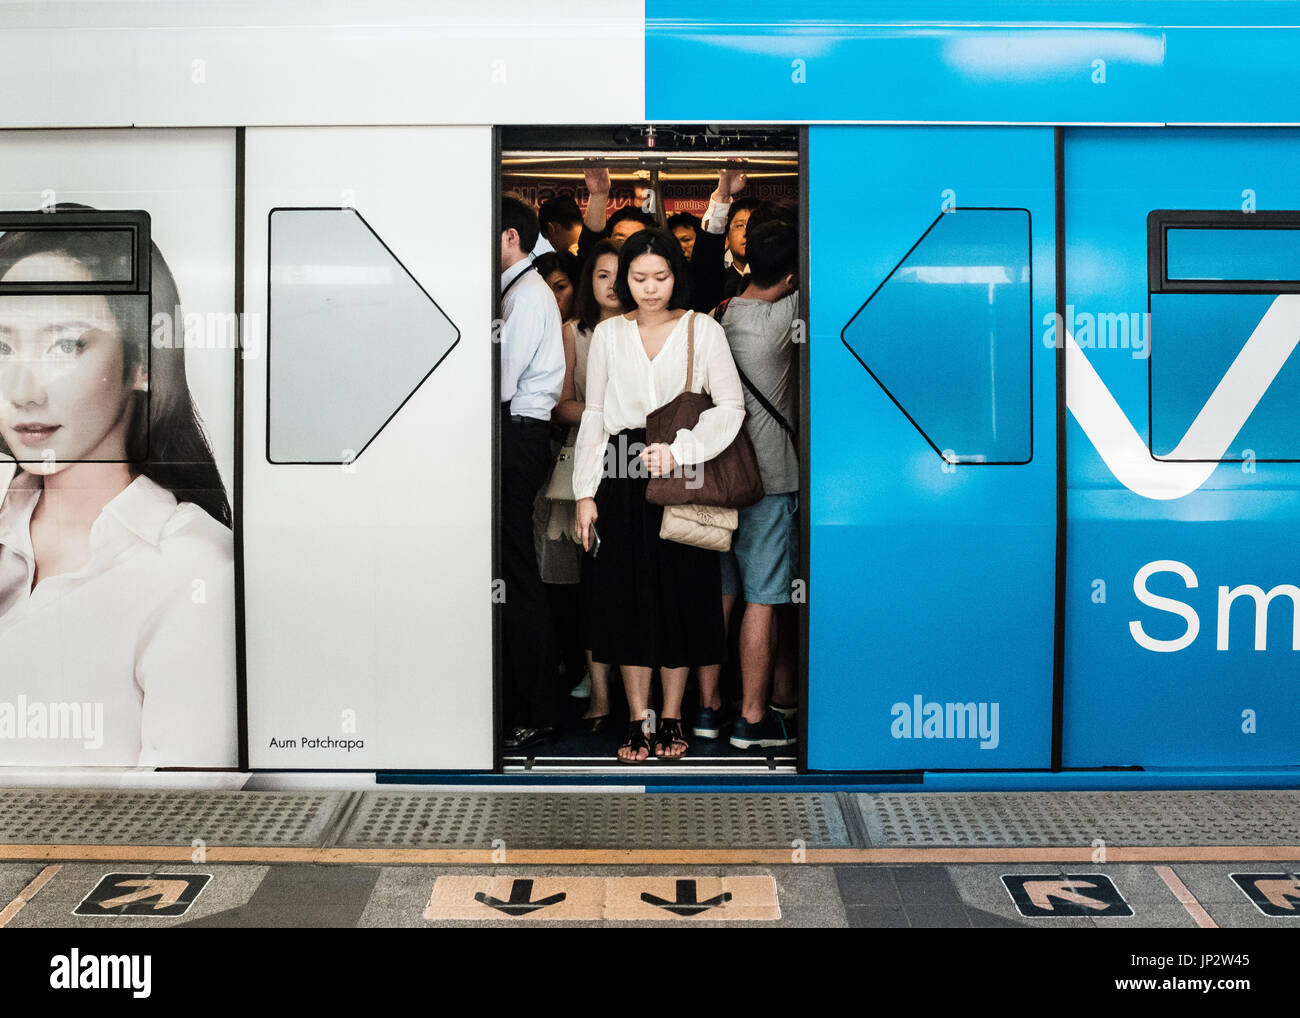 Doors are closing on skytrain (BTS) in Bangkok. - Stock Image